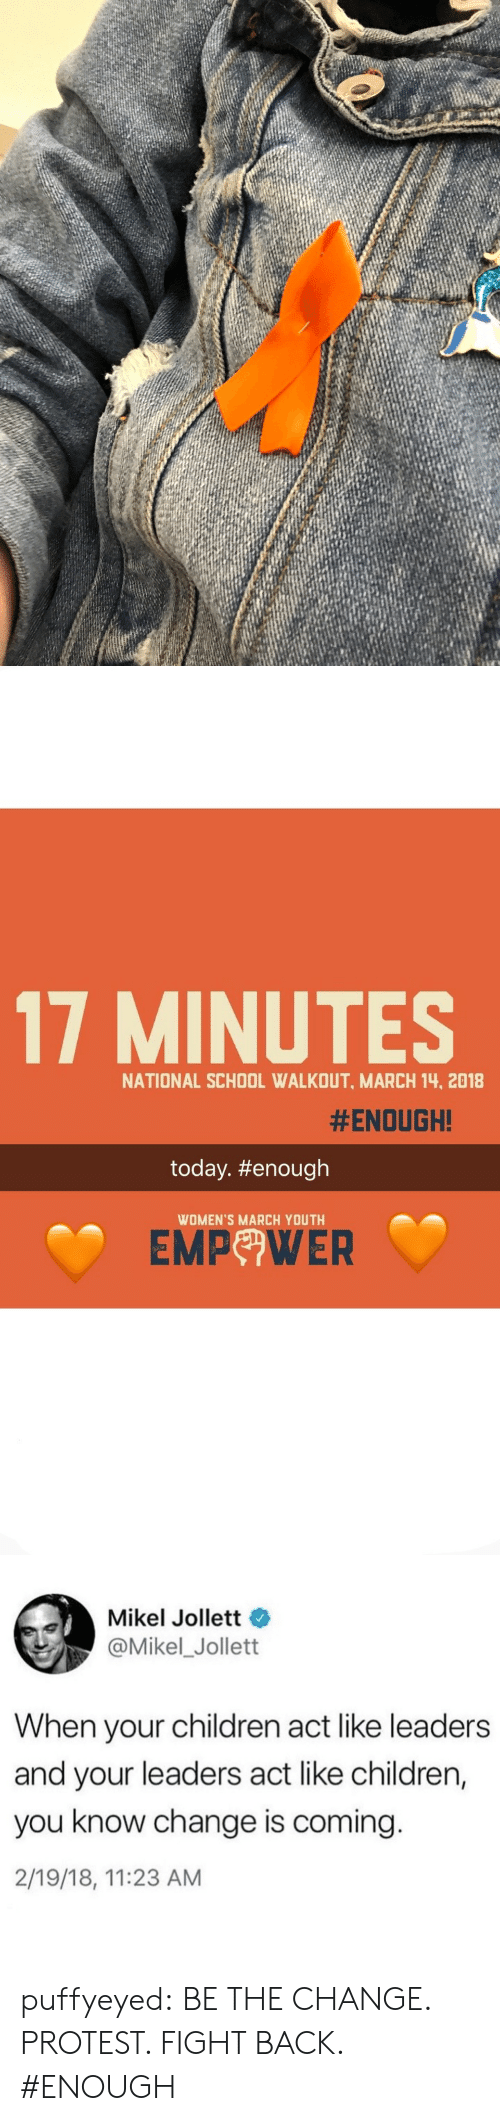 Womens March: 17 MINUTES  NATIONAL SCHOOL WALKOUT, MARCH 14, 2018  #ENOUGH!  today. #enough  WOMEN'S MARCH YOUTH  EMP WER   Mikel Jollett  @Mikel_Jollett  When your children act like leaders  and your leaders act like children,  you know change is coming  2/19/18, 11:23 AM puffyeyed:  BE THE CHANGE. PROTEST. FIGHT BACK. #ENOUGH